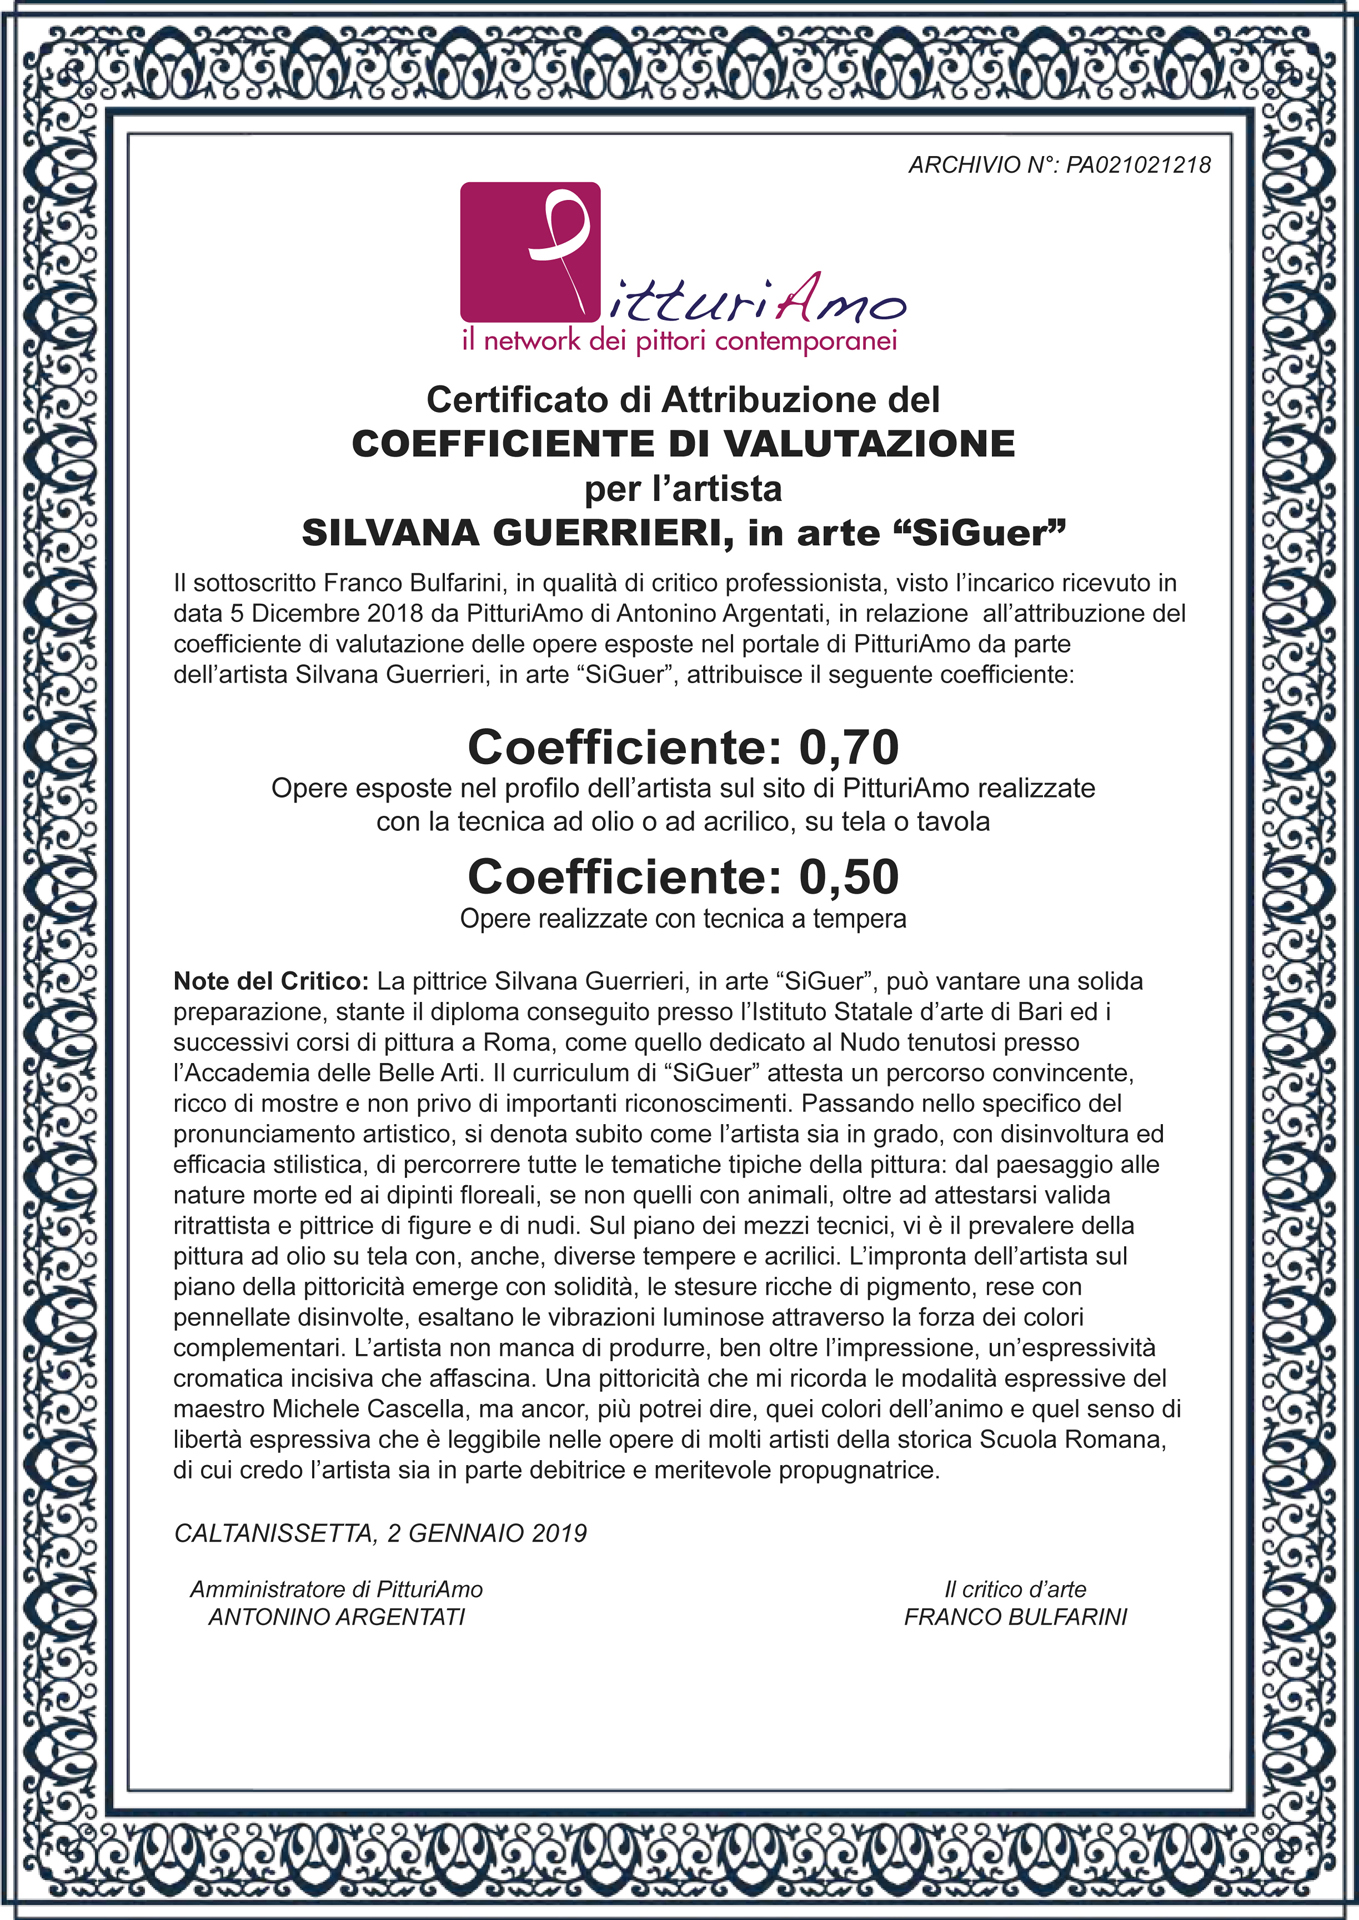 Il Coefficiente d'artista di Silvana Guerrieri, in arte SiGuer